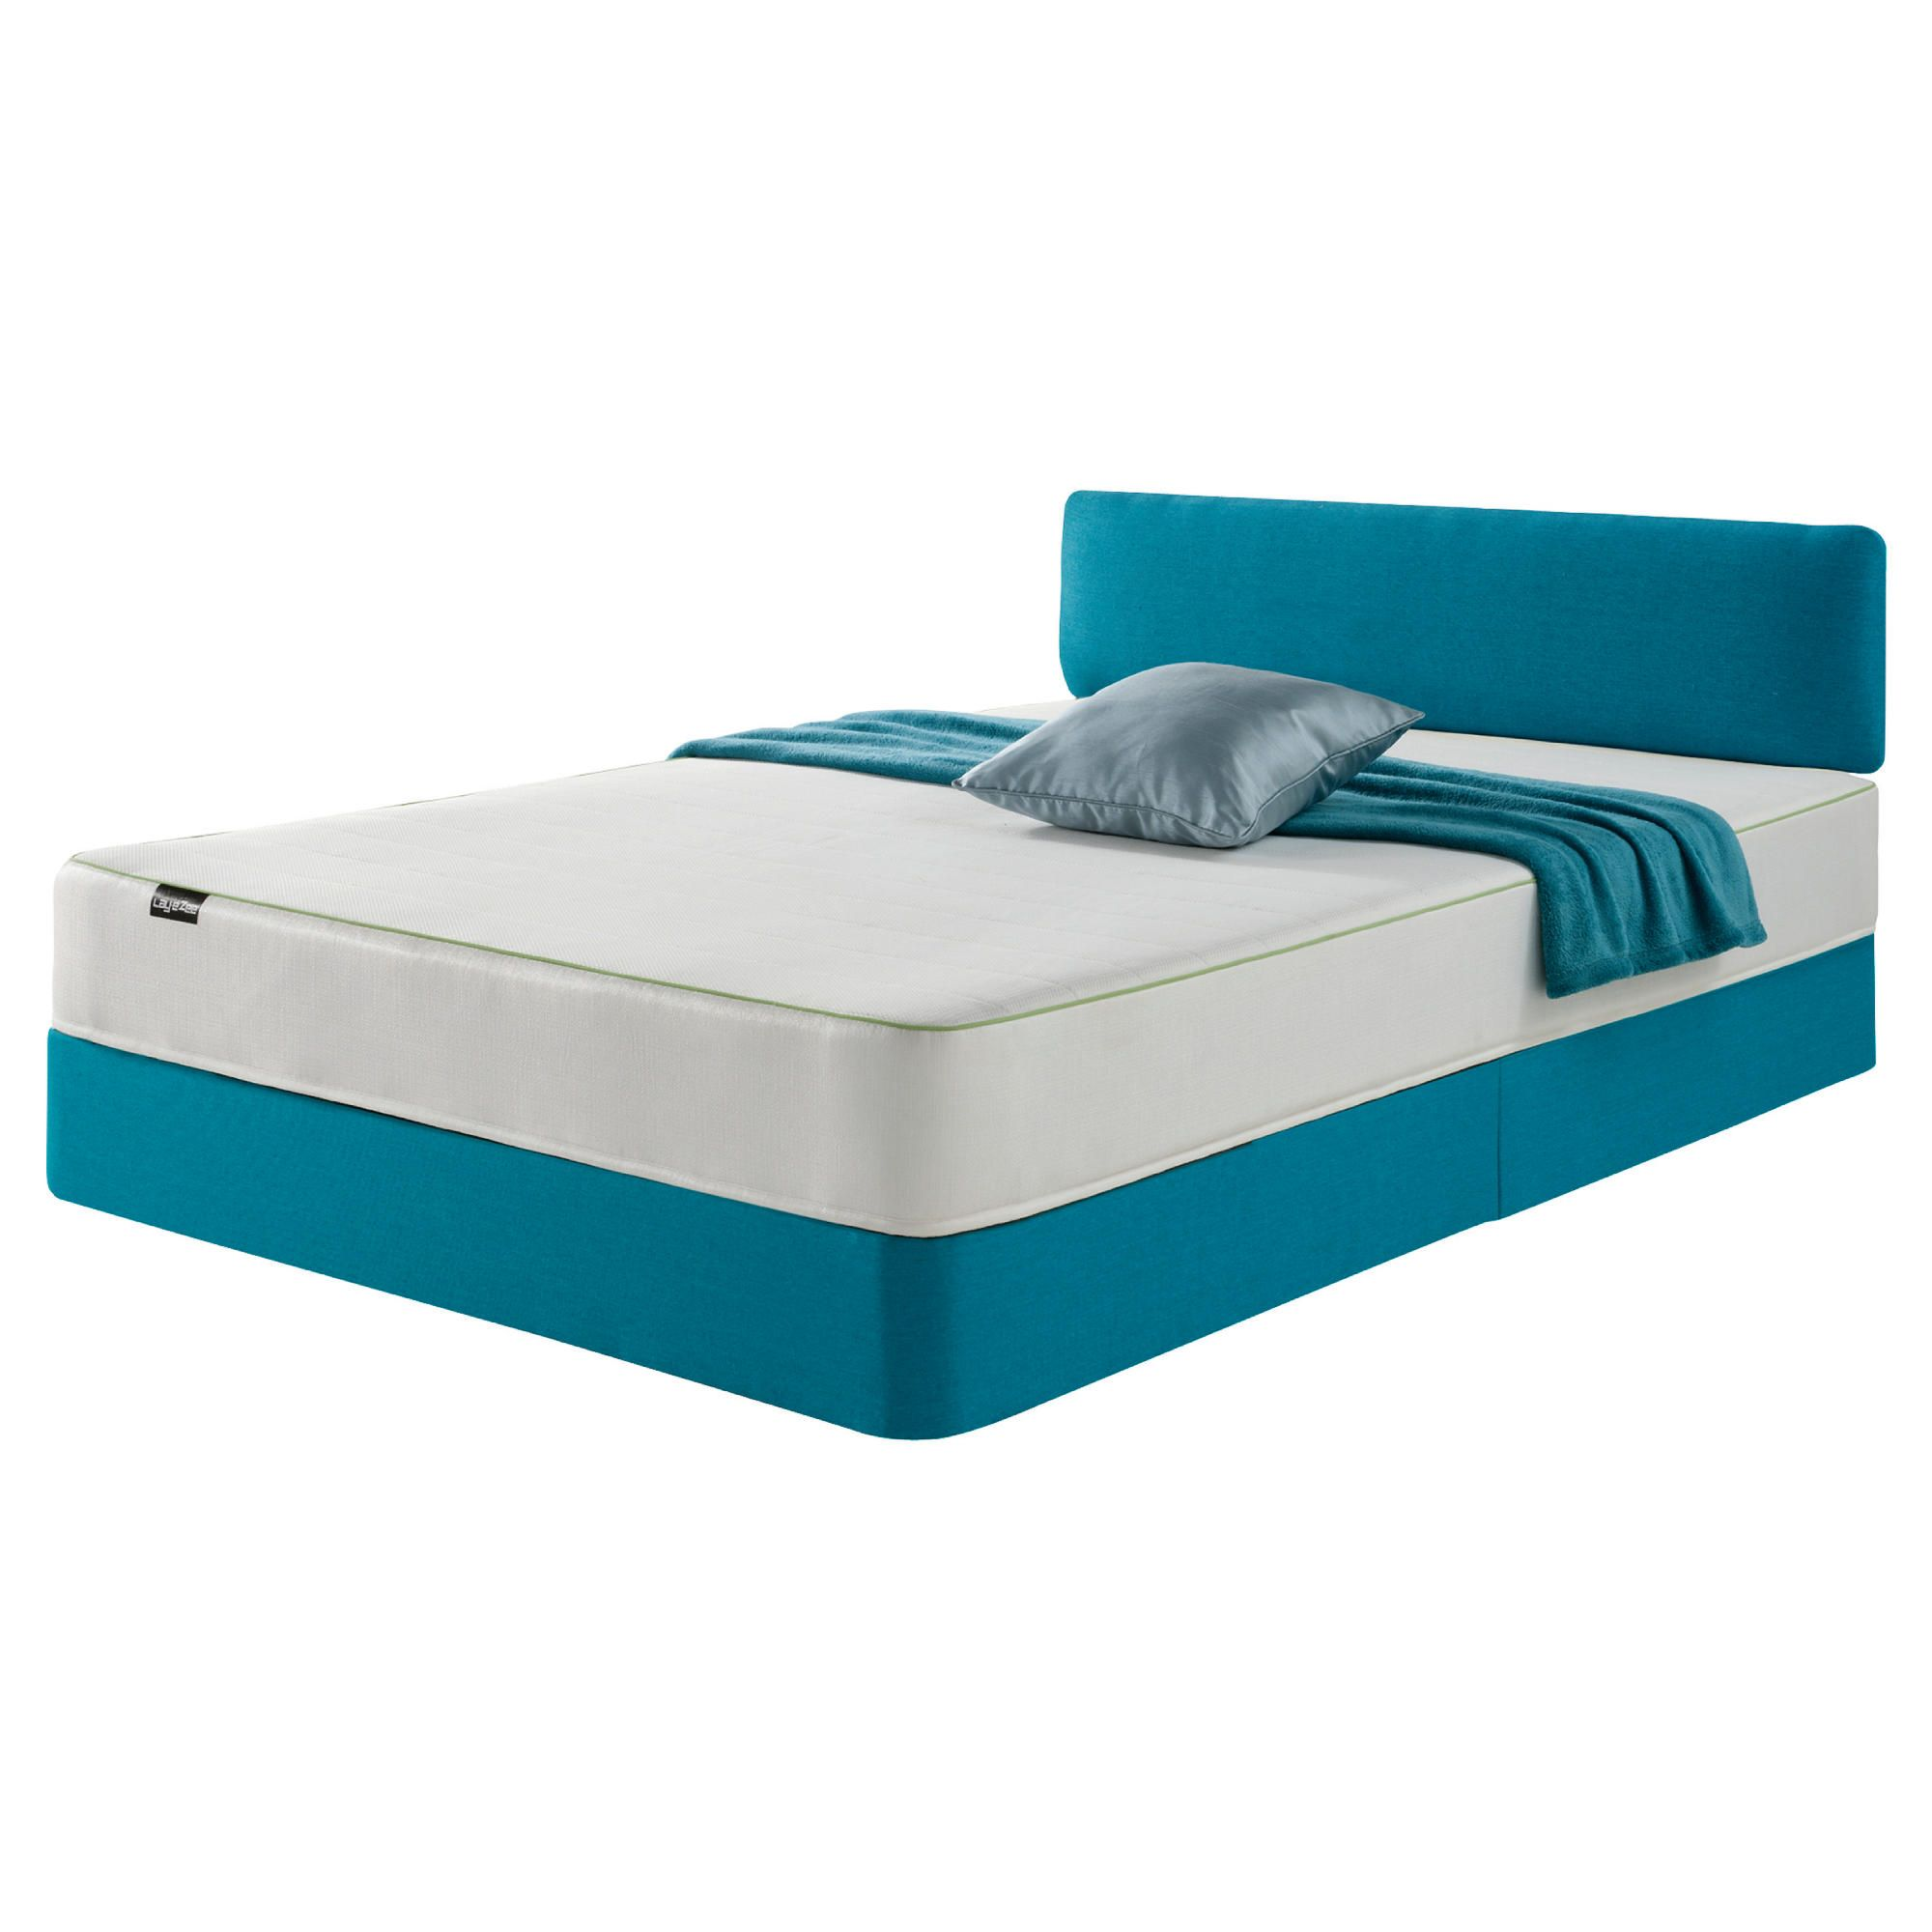 Layezee Teal Bed and Headboard Standard Mattress Small Double at Tesco Direct